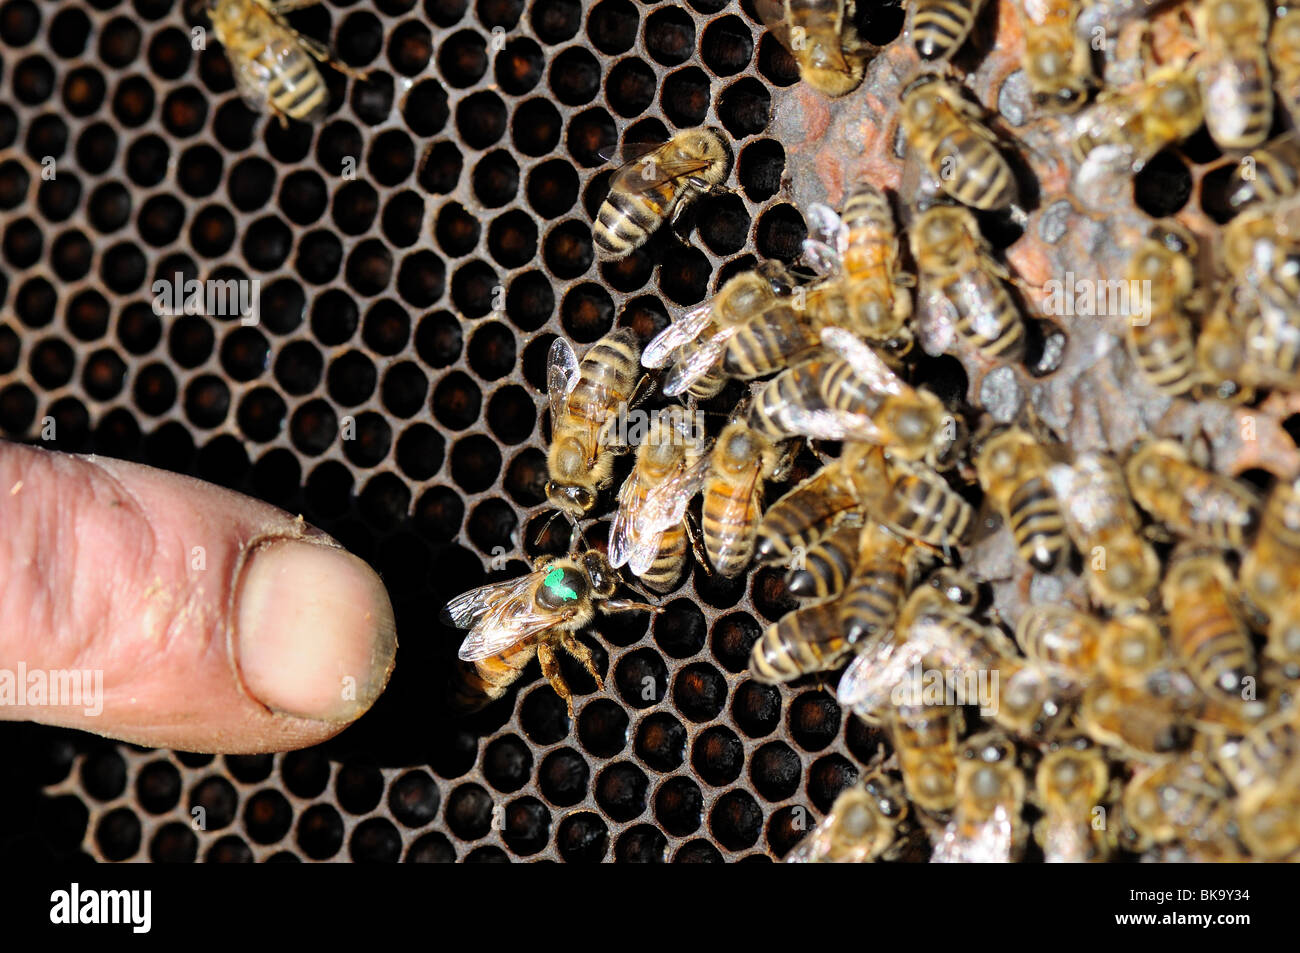 Thats the queen bee. - Stock Image